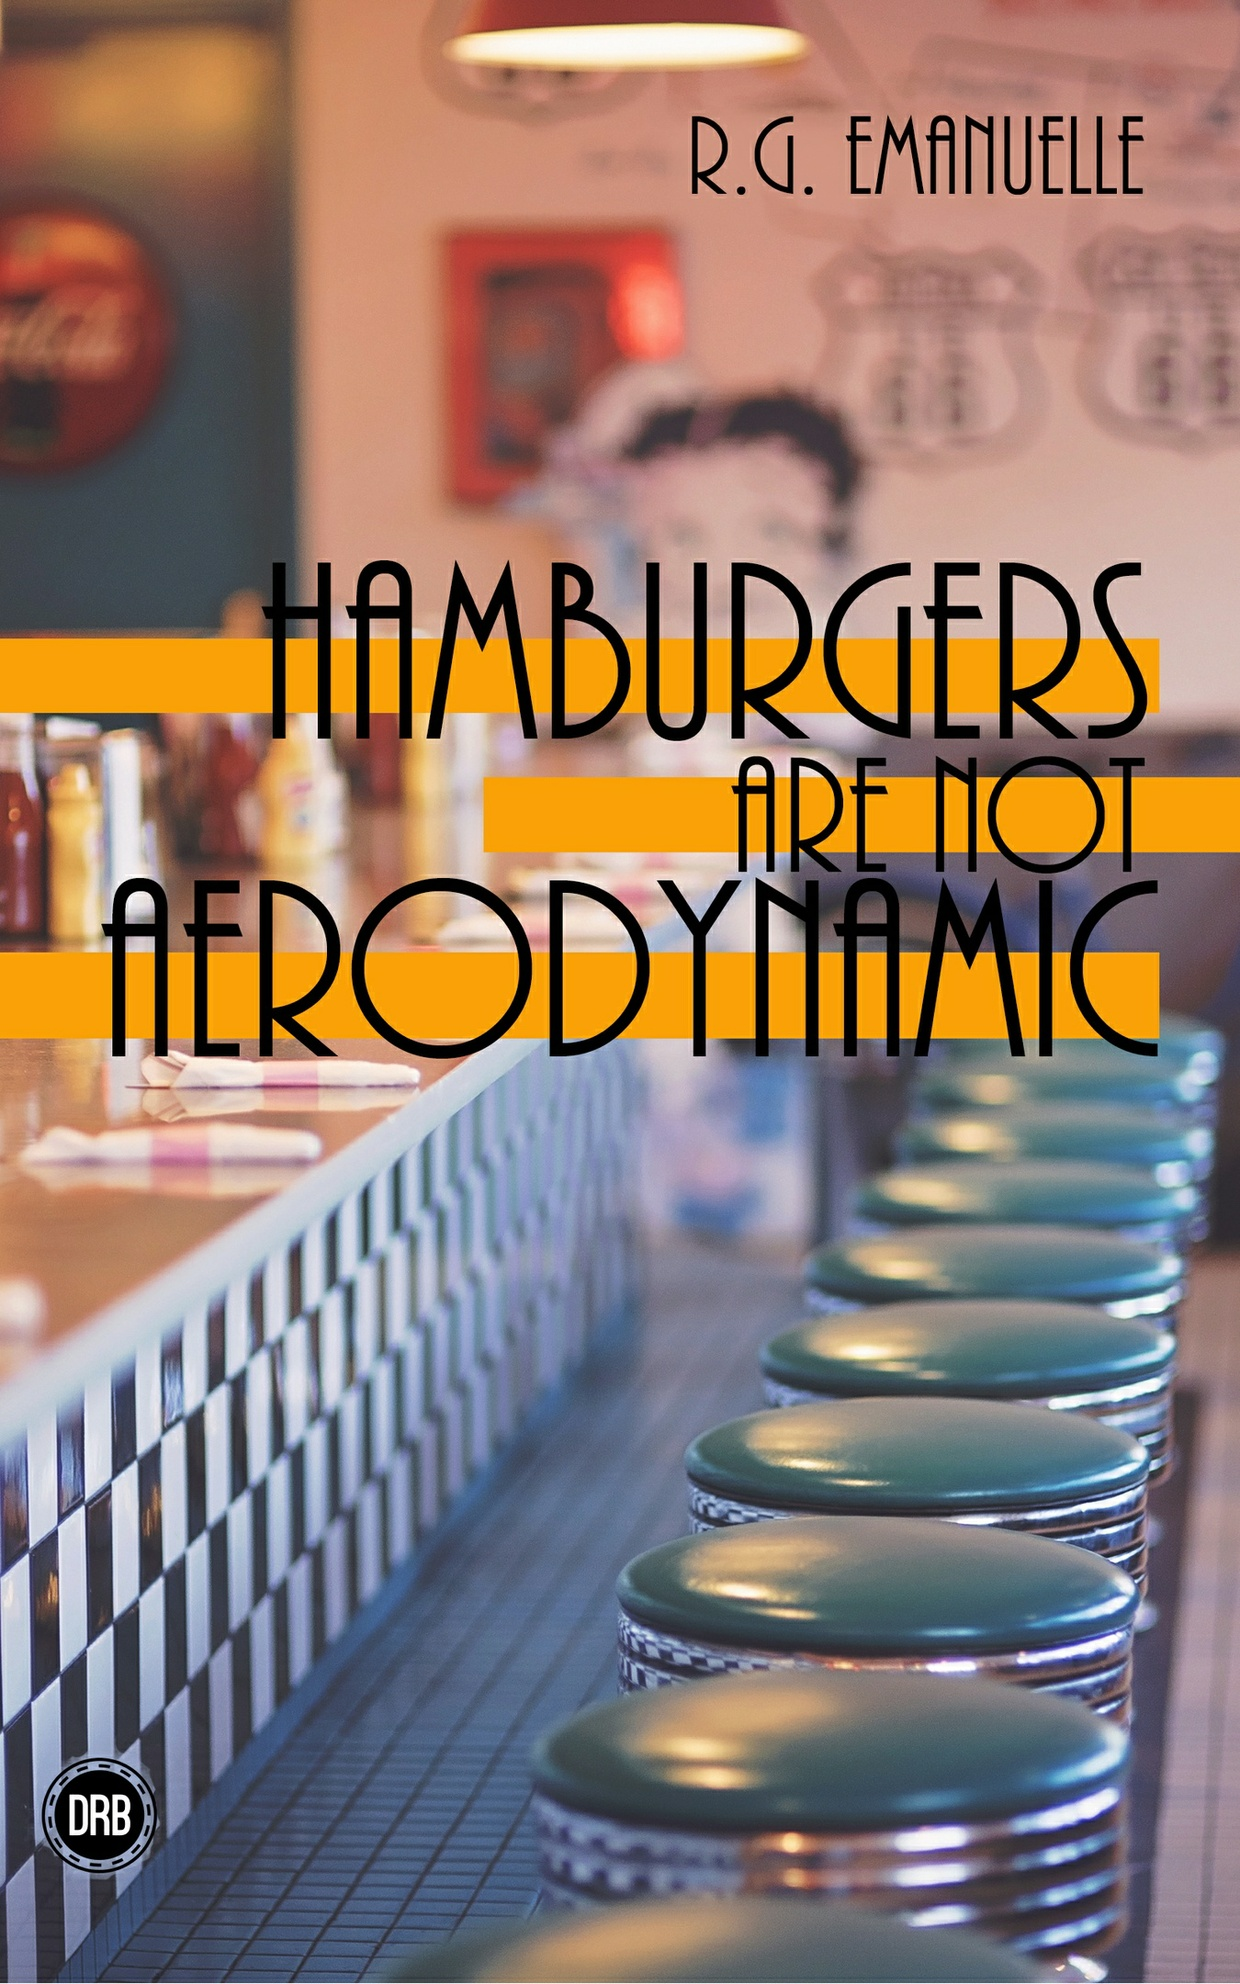 Hamburgers are not Aerodynamic by R.G. Emanuelle - Mobi (Kindle)